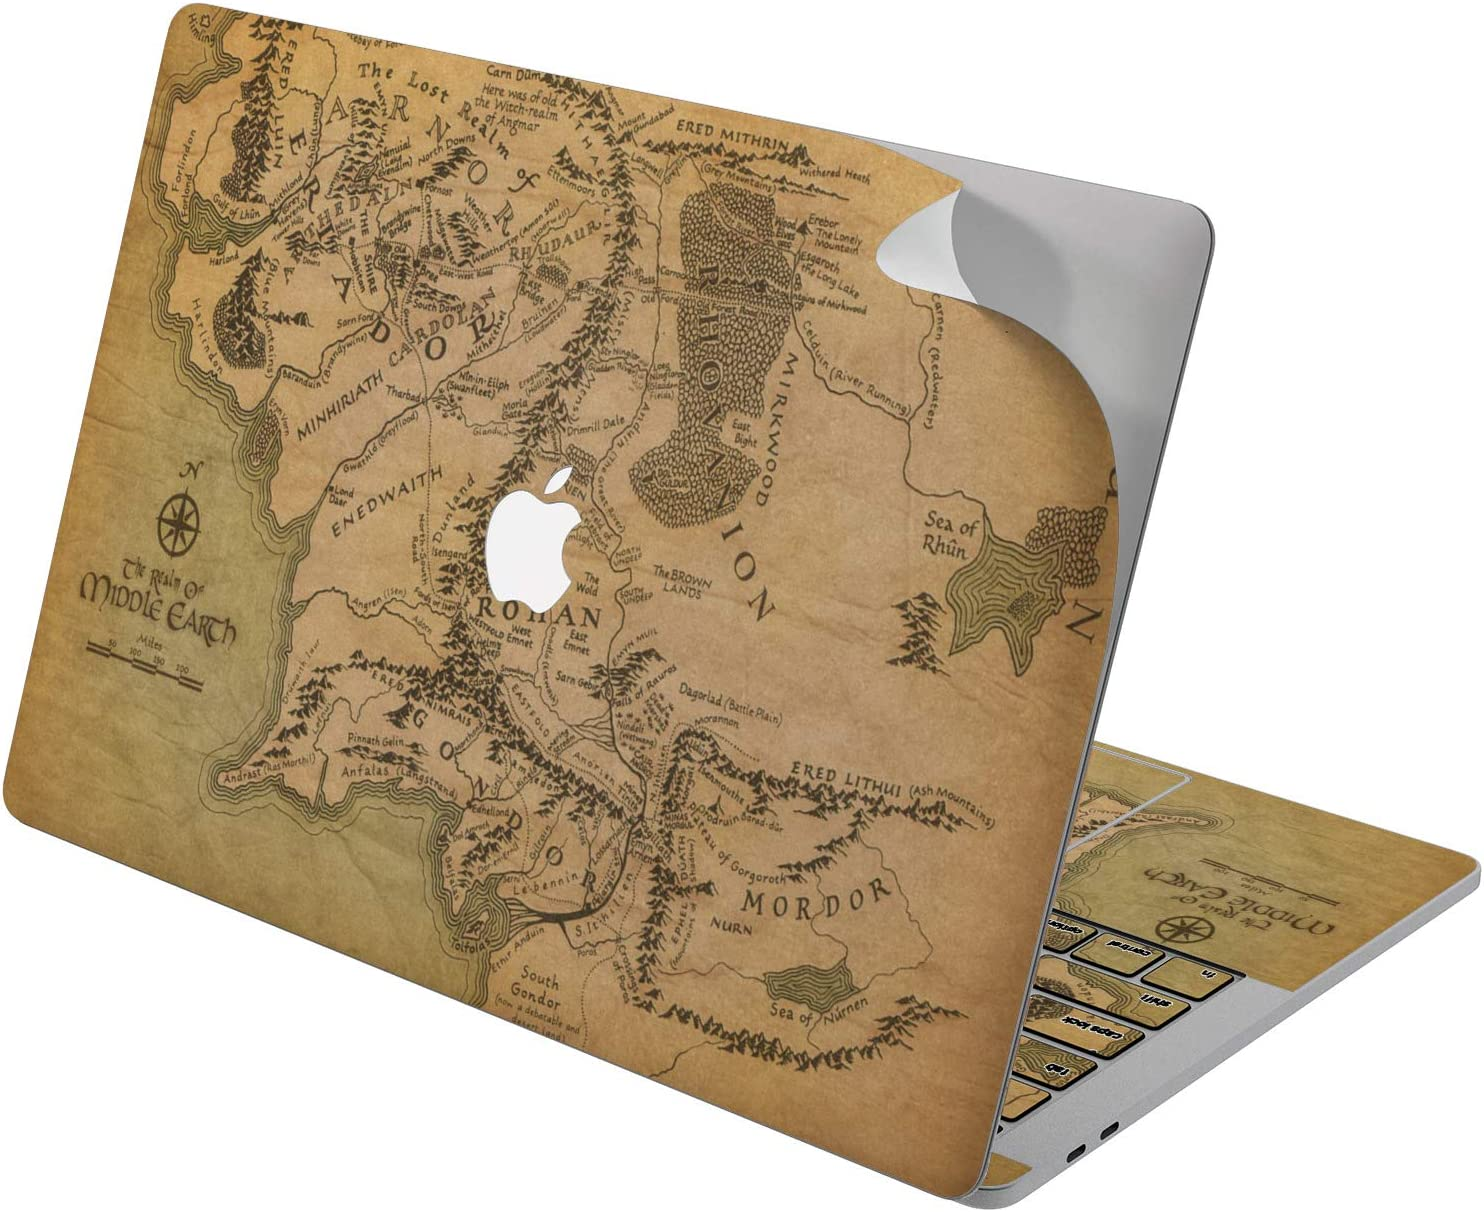 """Cavka Vinyl Decal Skin for Apple MacBook Pro 13"""" 2019 15"""" 2018 Air 13"""" 2020 Retina 2015 Mac 11"""" Mac 12"""" Especial Cover Print Design Sticker Protective Middle Earth The Lord of The Rings Map Laptop"""